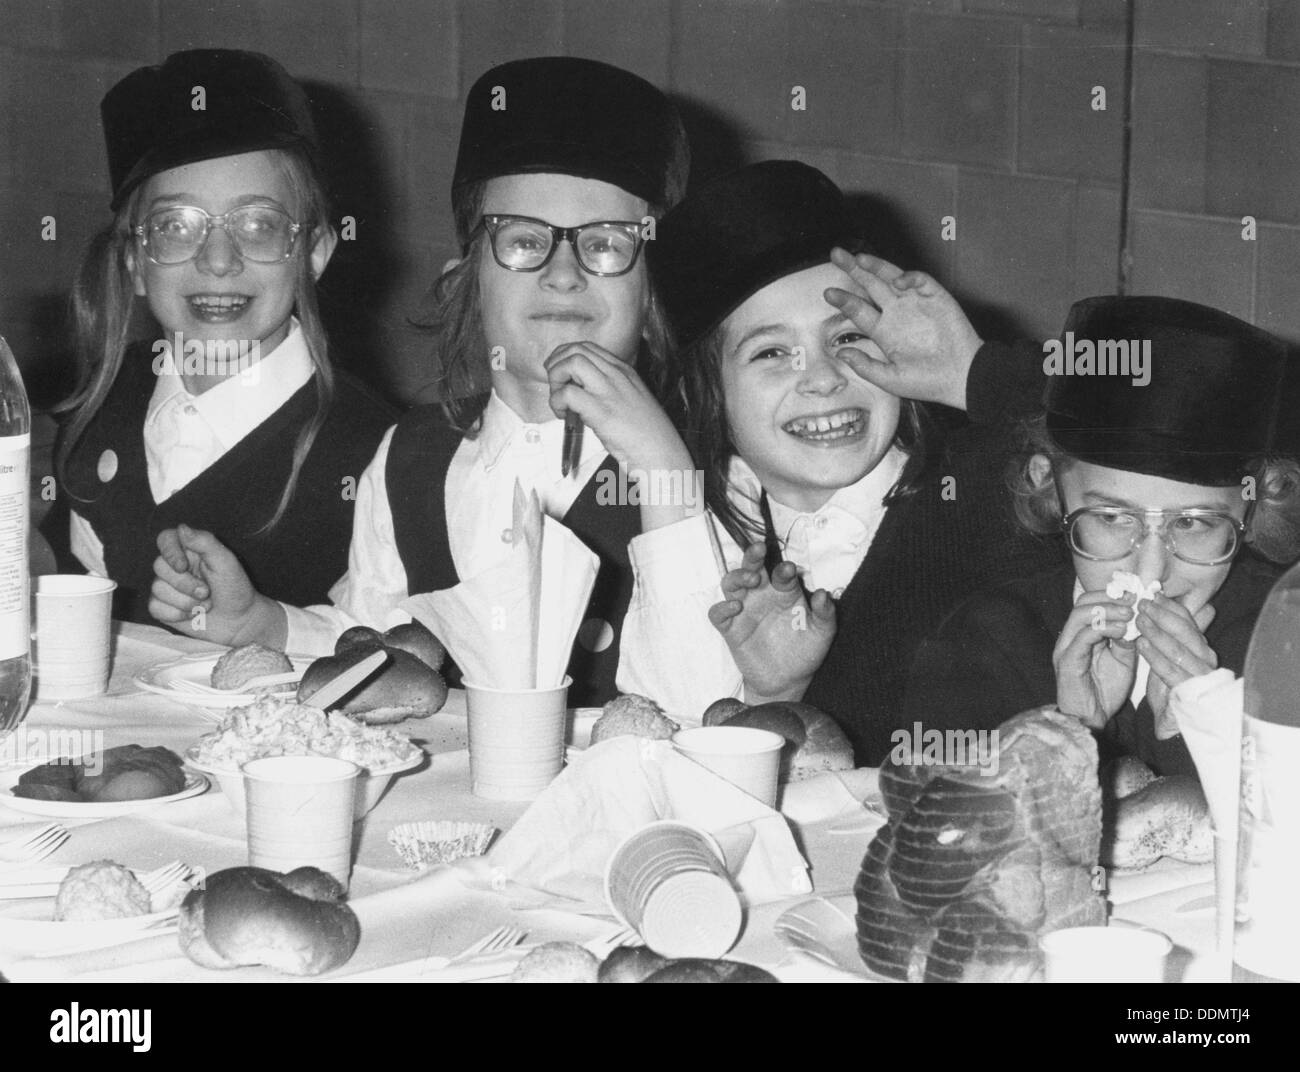 Jewish children at an Agudist event, 6 January 1989. Artist: Henry Jacobs - Stock Image